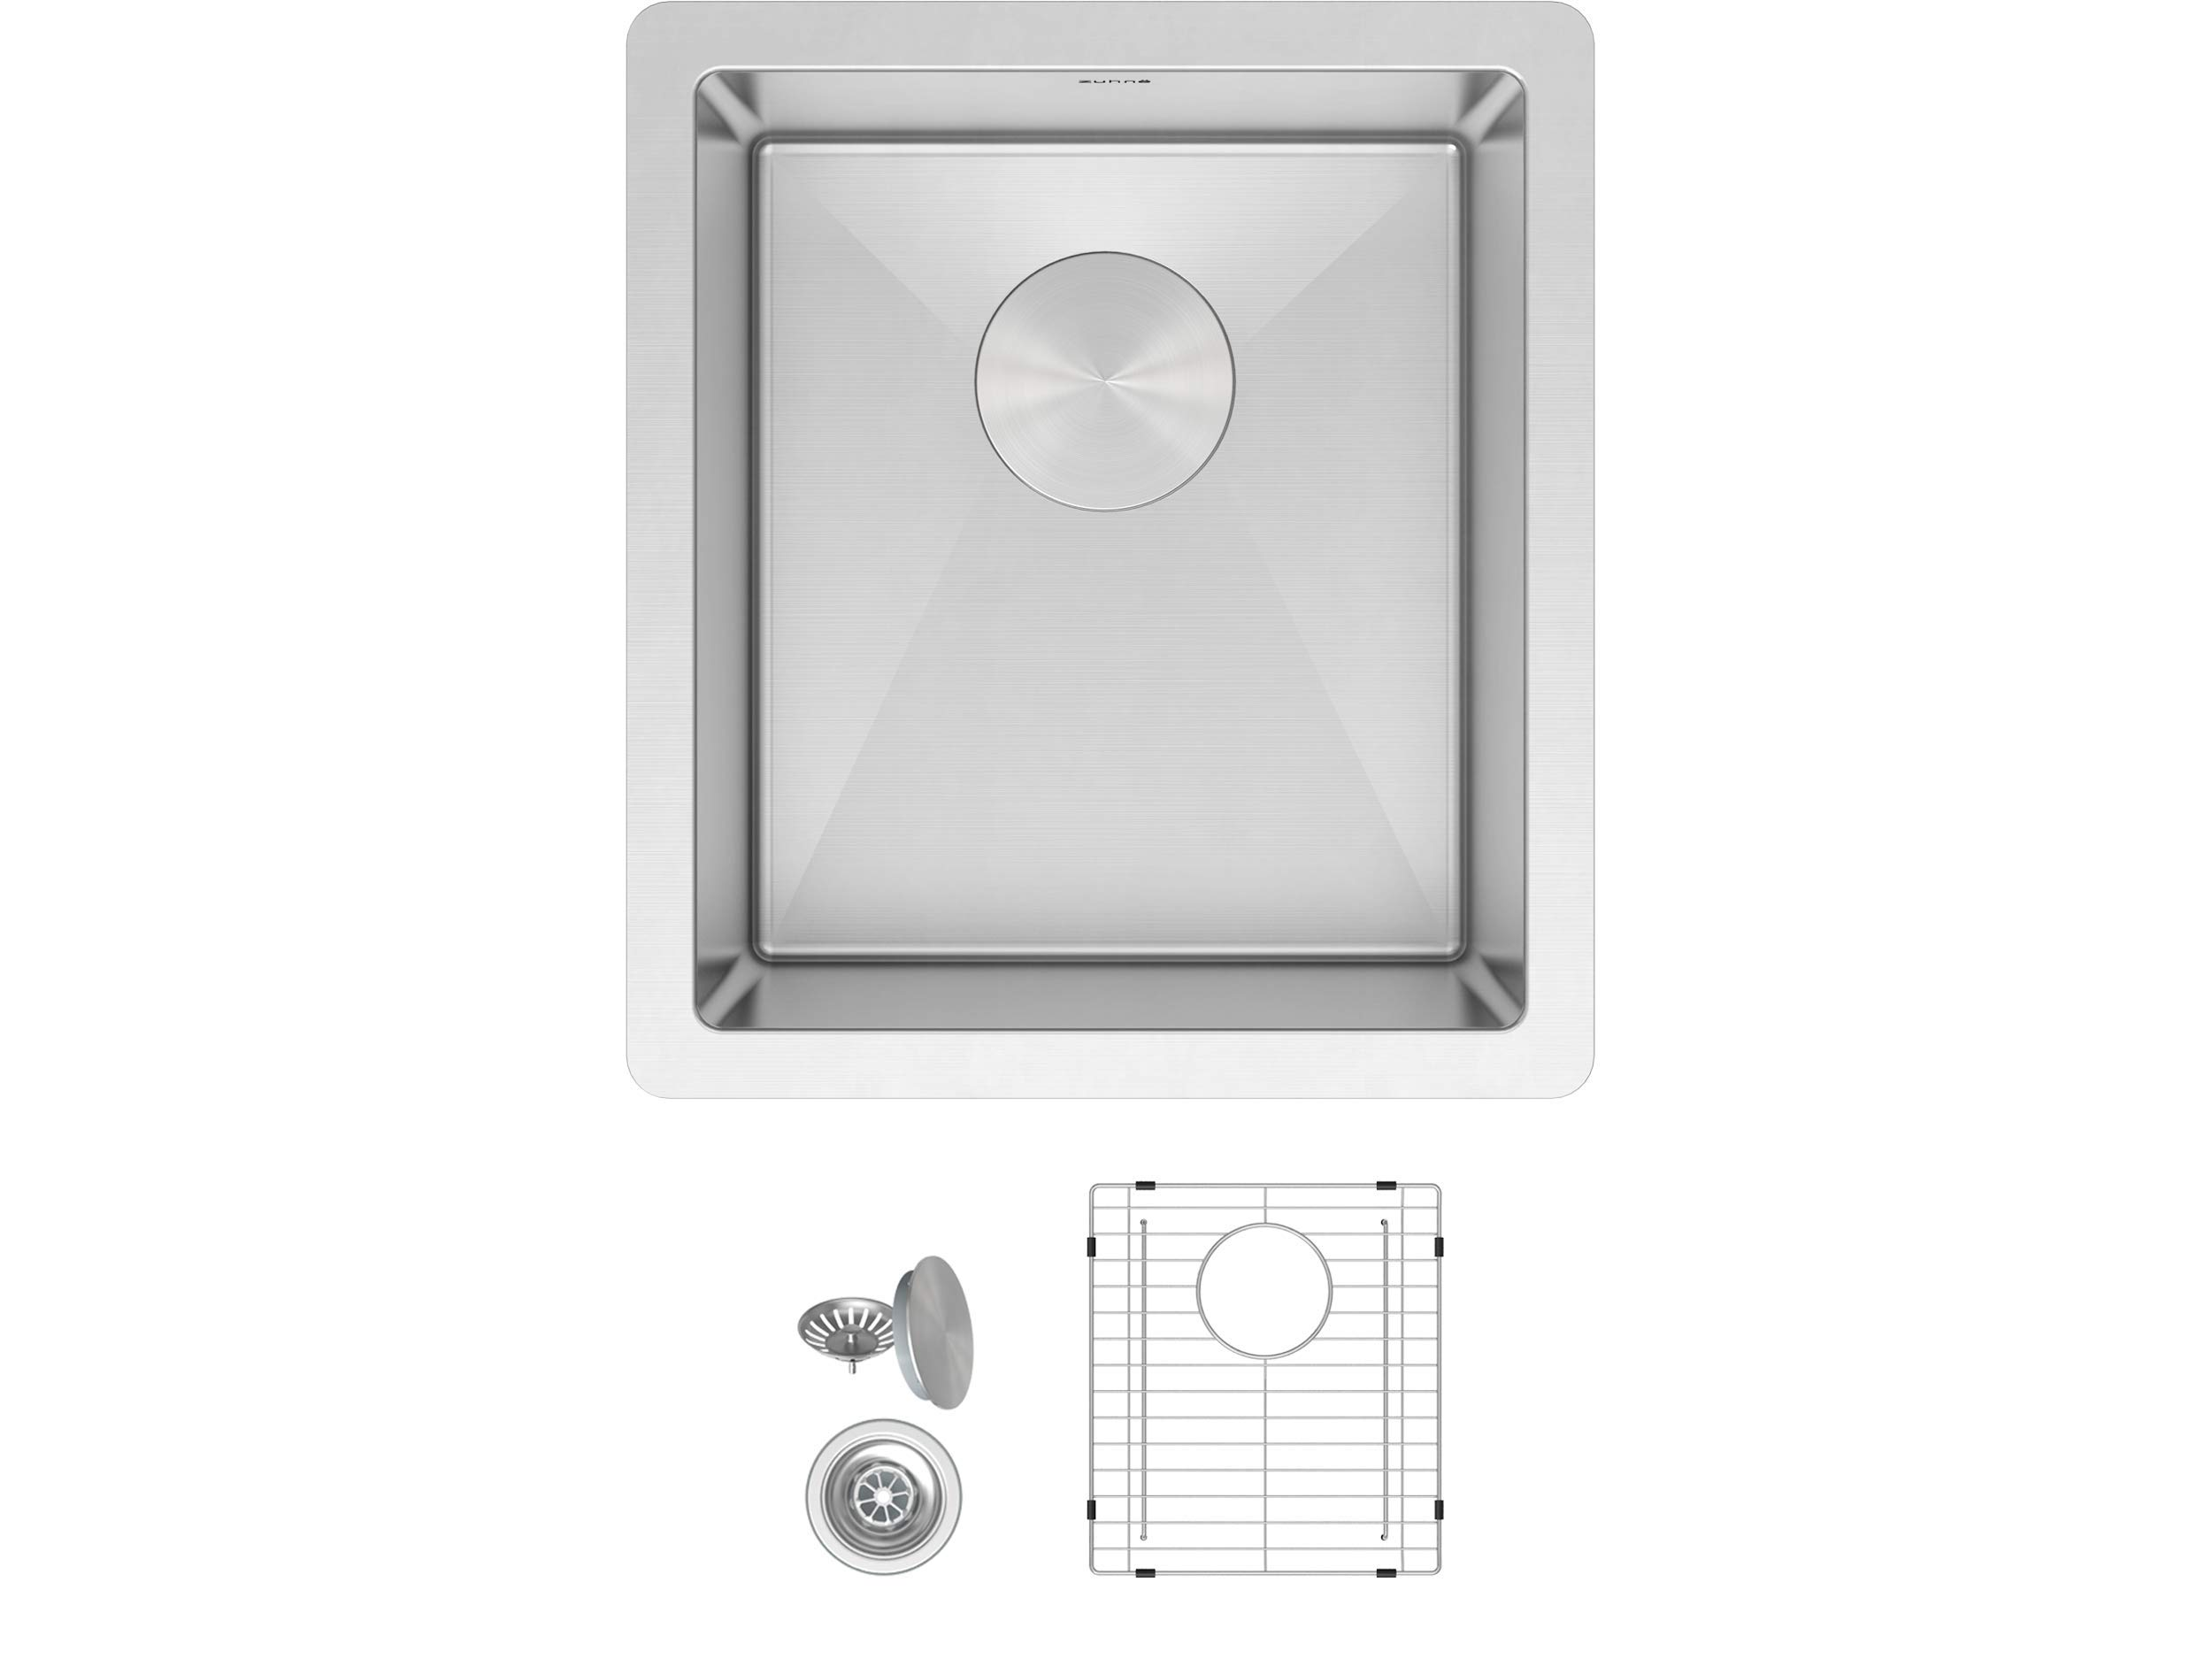 ZUHNE Modena 13 x 15 Inch Wet Bar, Small Prep, RV and Utility Kitchen Sink Undermount Single Bowl 16 Gauge Stainless Steel W. Scratch Protector Grate and Drain Strainer, Fits 15'' Cabinet